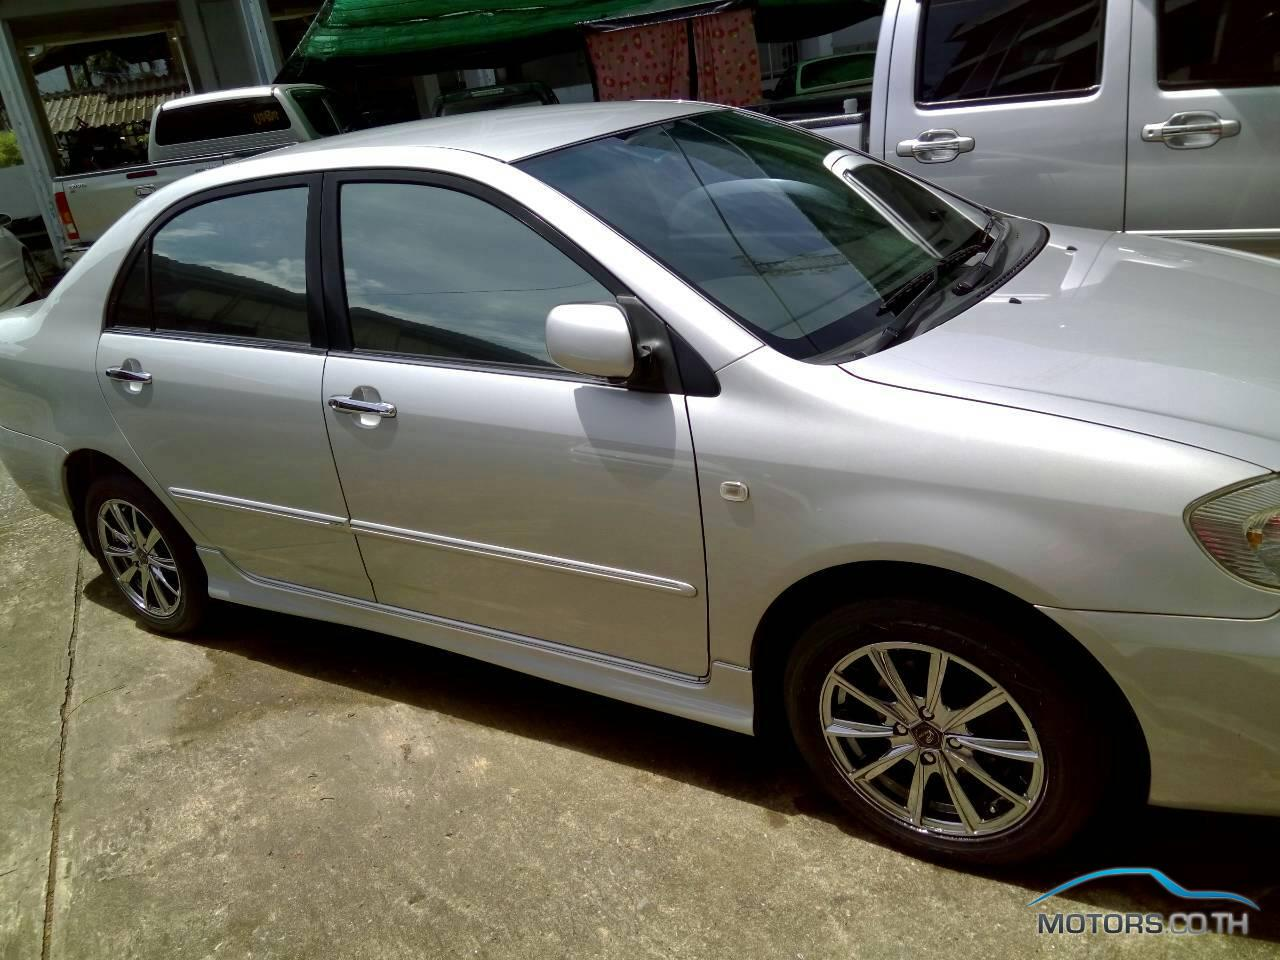 New, Used & Secondhand Cars TOYOTA ALTIS (2003)